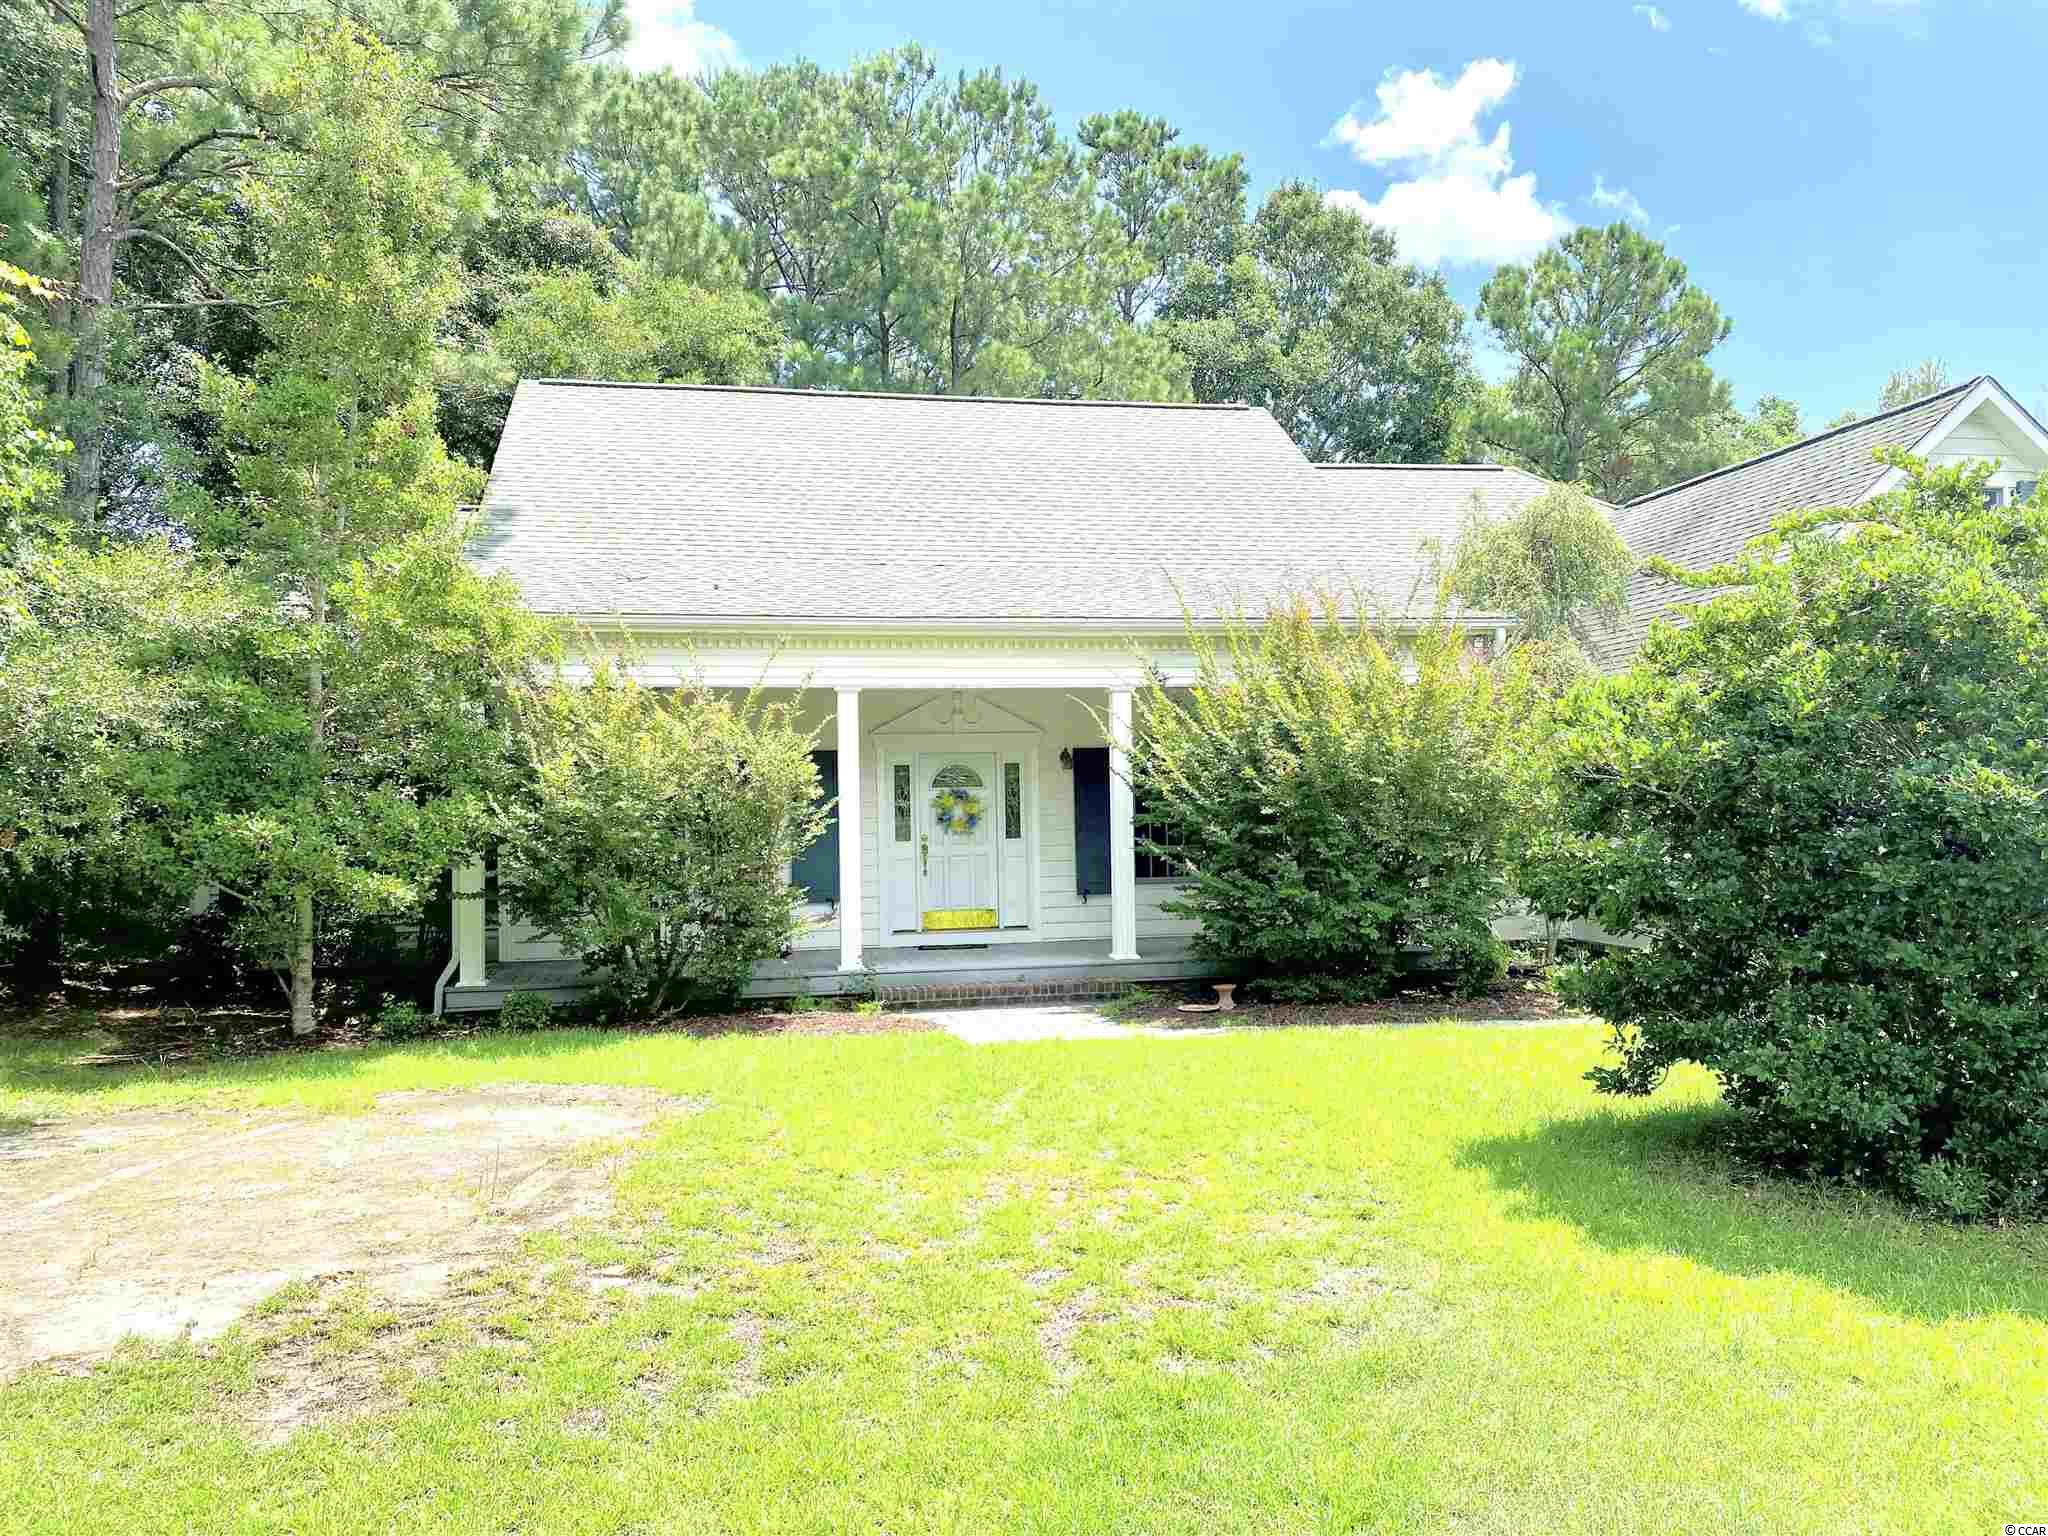 What a fantastic opportunity to own a custom built home east of 17 business in Pawleys Island, SC!!!  This is truly a must see!  This beautiful home features 3 bedroom/3 full bath home with a bonus room.  As you walk up to the front door you'll notice the perfect front porch with a lovely porch swing to sit outside with a nice cup of coffee in the mornings before you start your day, or with a bottle of wine at the end of the day.  Upon entering the front door you will find the formal dining room off to your right, perfect for hosting large family gatherings.  To the left of the foyer you will find the perfect room for a formal living room, or a TV room, or the perfect place for your office.  Just beyond the foyer you will see the fireplace in the family room, perfect for those chilly southern evenings.  This home features a split bedroom floor plan, so on the one side of the home you will find 2 guest bedrooms, one featuring an en-suite bathroom.  Both bedrooms are a generous size!!  There's plenty of room for the entire family!!  On the other side of the fireplace you will be welcomed by a spacious Carolina room.  Another room for entertaining friends and family!!! The kitchen is truly a chef's dream!!!  There's plenty of cabinet and counter space, a huge walk-in pantry to store all your cooking essentials!!  Down the hallway you will find the laundry room with a soaking sink, and access to the large 3 car garage.  Just beyond the laundry room you will find the enormous master suite!!!  This room is the perfect place to unwind from a long day at the beach.  The master bathroom features an oversized shower for 2, a jetted tub to take the perfect bubble bath!!  There's more!!!  Up the stairs just outside of the master bedroom, you will find a huge bonus room!  The possibilities for that room are endless!!!  In the bonus room you will find access to 2 walk-in attic spaces.  The amount of storage in this home is truly amazing!!!  This home is truly amazing!!!  It's a c